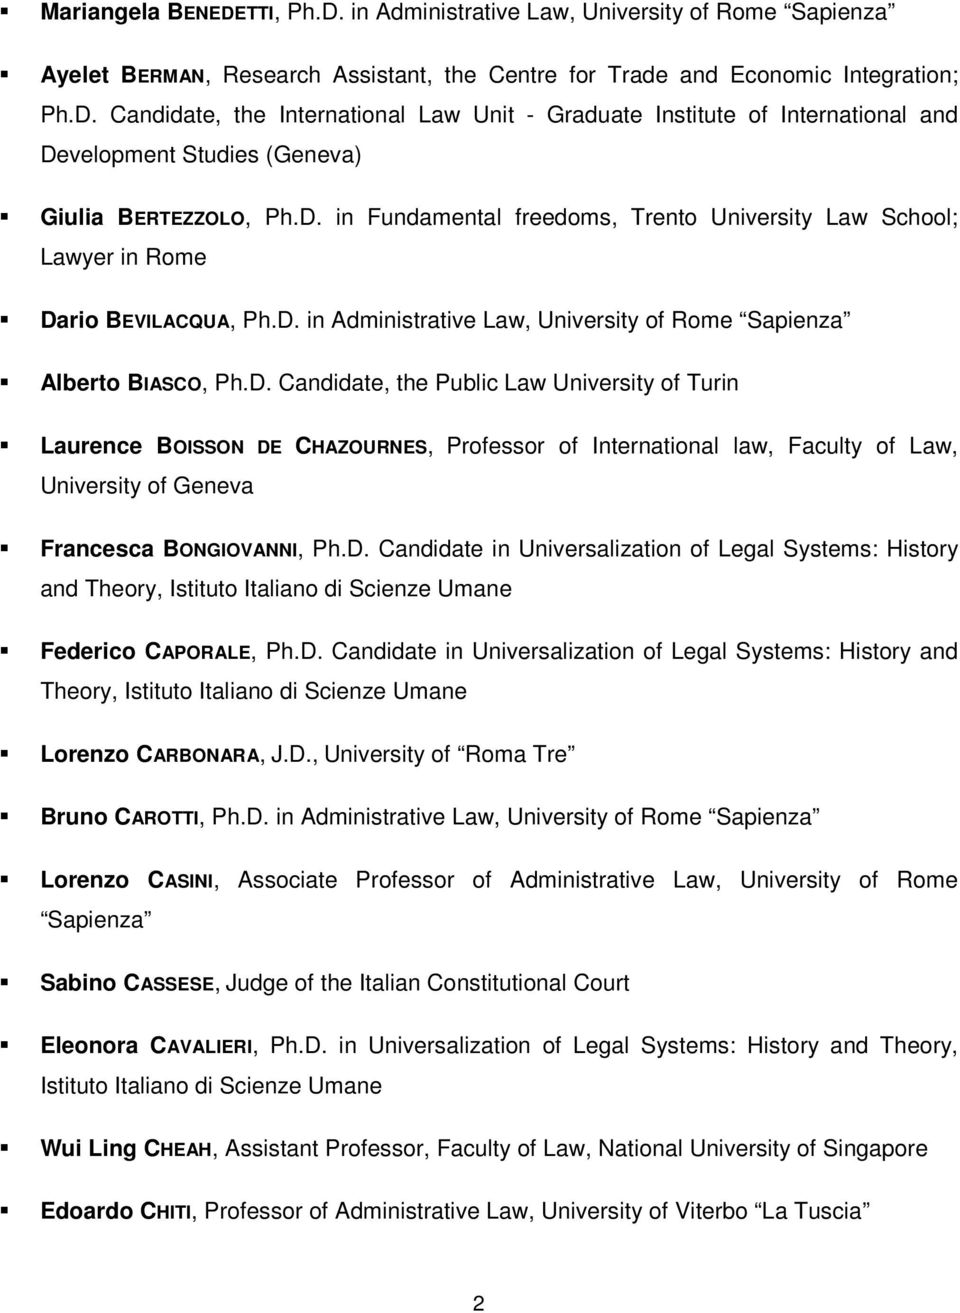 D. Candidate in Universalization of Legal Systems: History and Federico CAPORALE, Ph.D. Candidate in Universalization of Legal Systems: History and Lorenzo CARBONARA, J.D., University of Roma Tre Bruno CAROTTI, Ph.